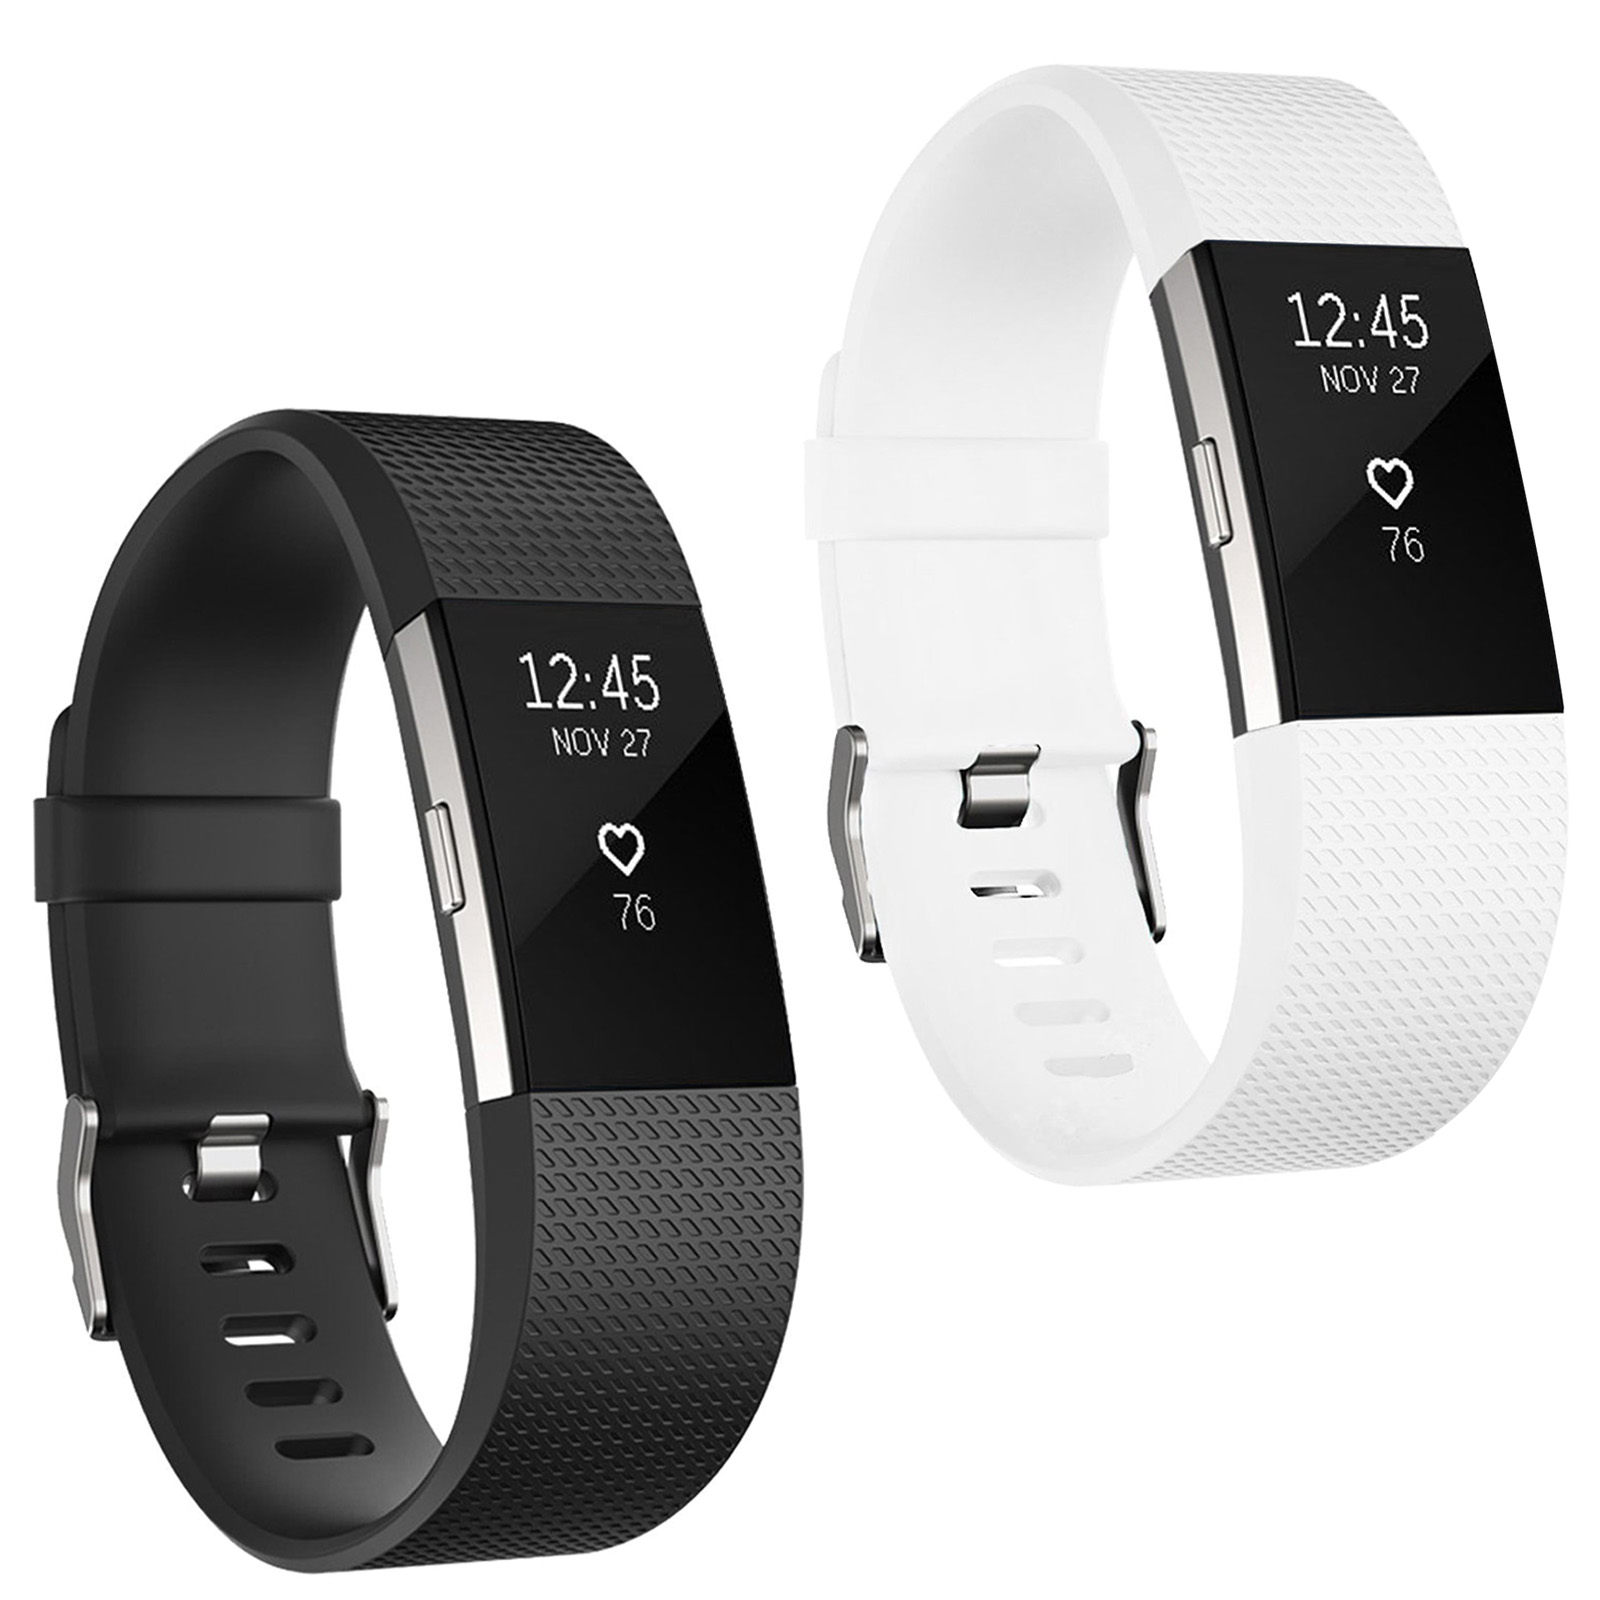 2 Packs Fitbit Charge 2 Bands, Adjustable Replacement Sport Strap Wristbands for Fitbit Charge 2